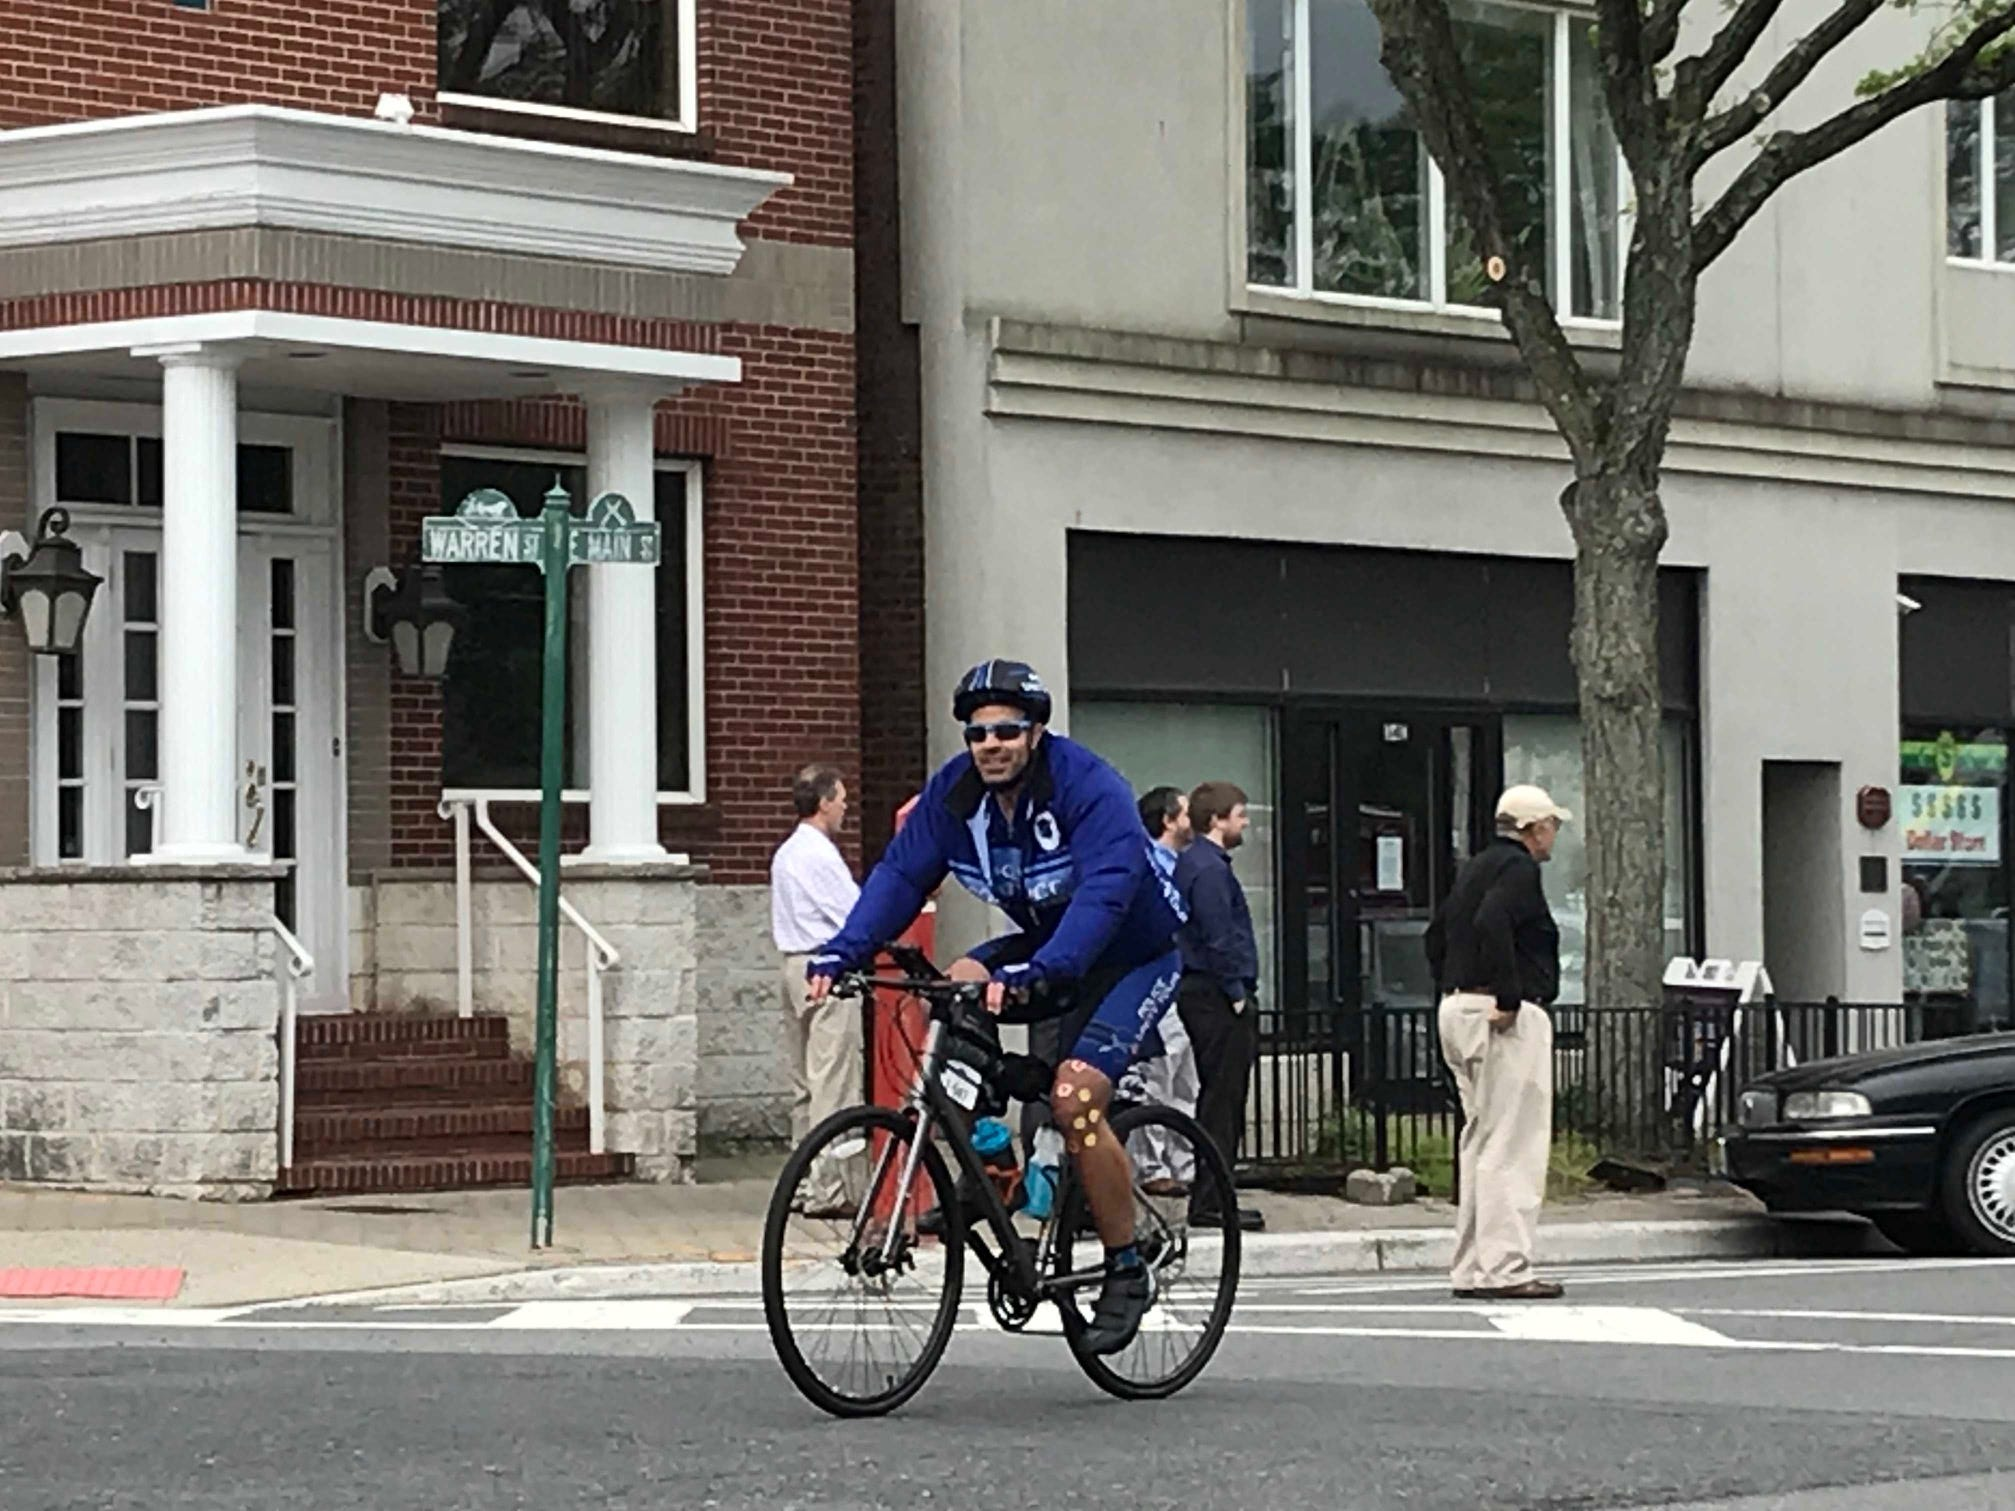 An estimated 600 riders traveled through Somerville Thursday as part of the Police Unity Tour.